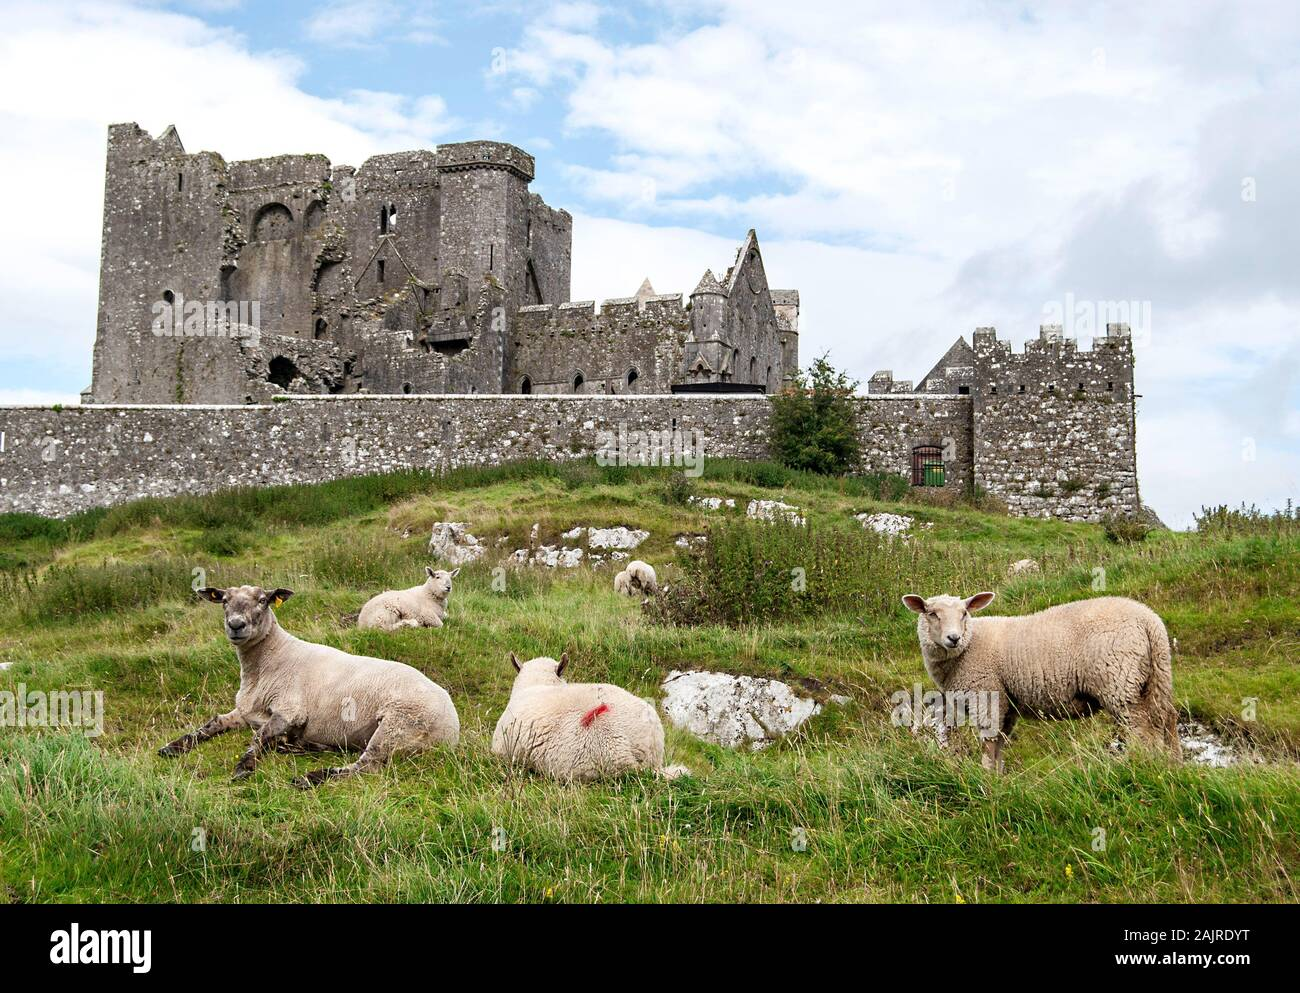 Rock of Cashel - Heritage Ireland